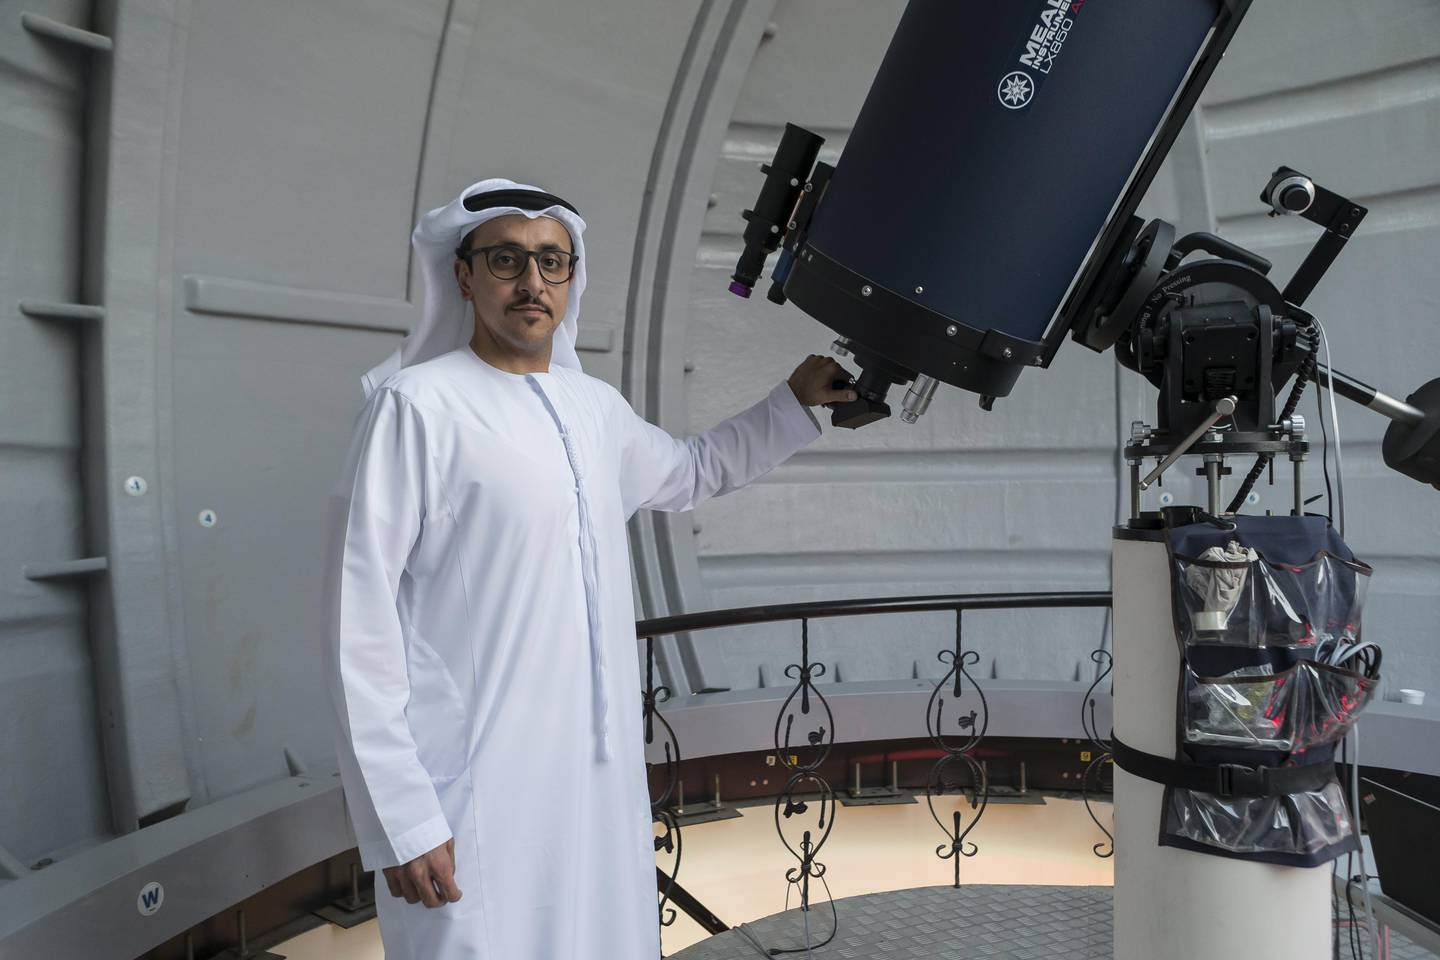 ABU DHABI, UNITED ARAB EMIRATES, 07 JANUARY 2017. An Emiratis childhood fascination with the desert night sky led to Thabet Al Qaisseh building an observatory on his family's farm in Al Wathba. Thabet regularly invites the public and students to his observatory, called the Al Sadeem Observatory, to further their understanding of astronomy and to promote the space sector amongst the youth. Thabet sets the telescope of the observatory to look at the brightly lit moon just before sunset. (Photo: Antonie Robertson/The National) ID: 12286. Journalist: Thamer Subaihi. Section: National. *** Local Caption ***  AR_0701_Al_Sadeem_Observatory-15.JPG